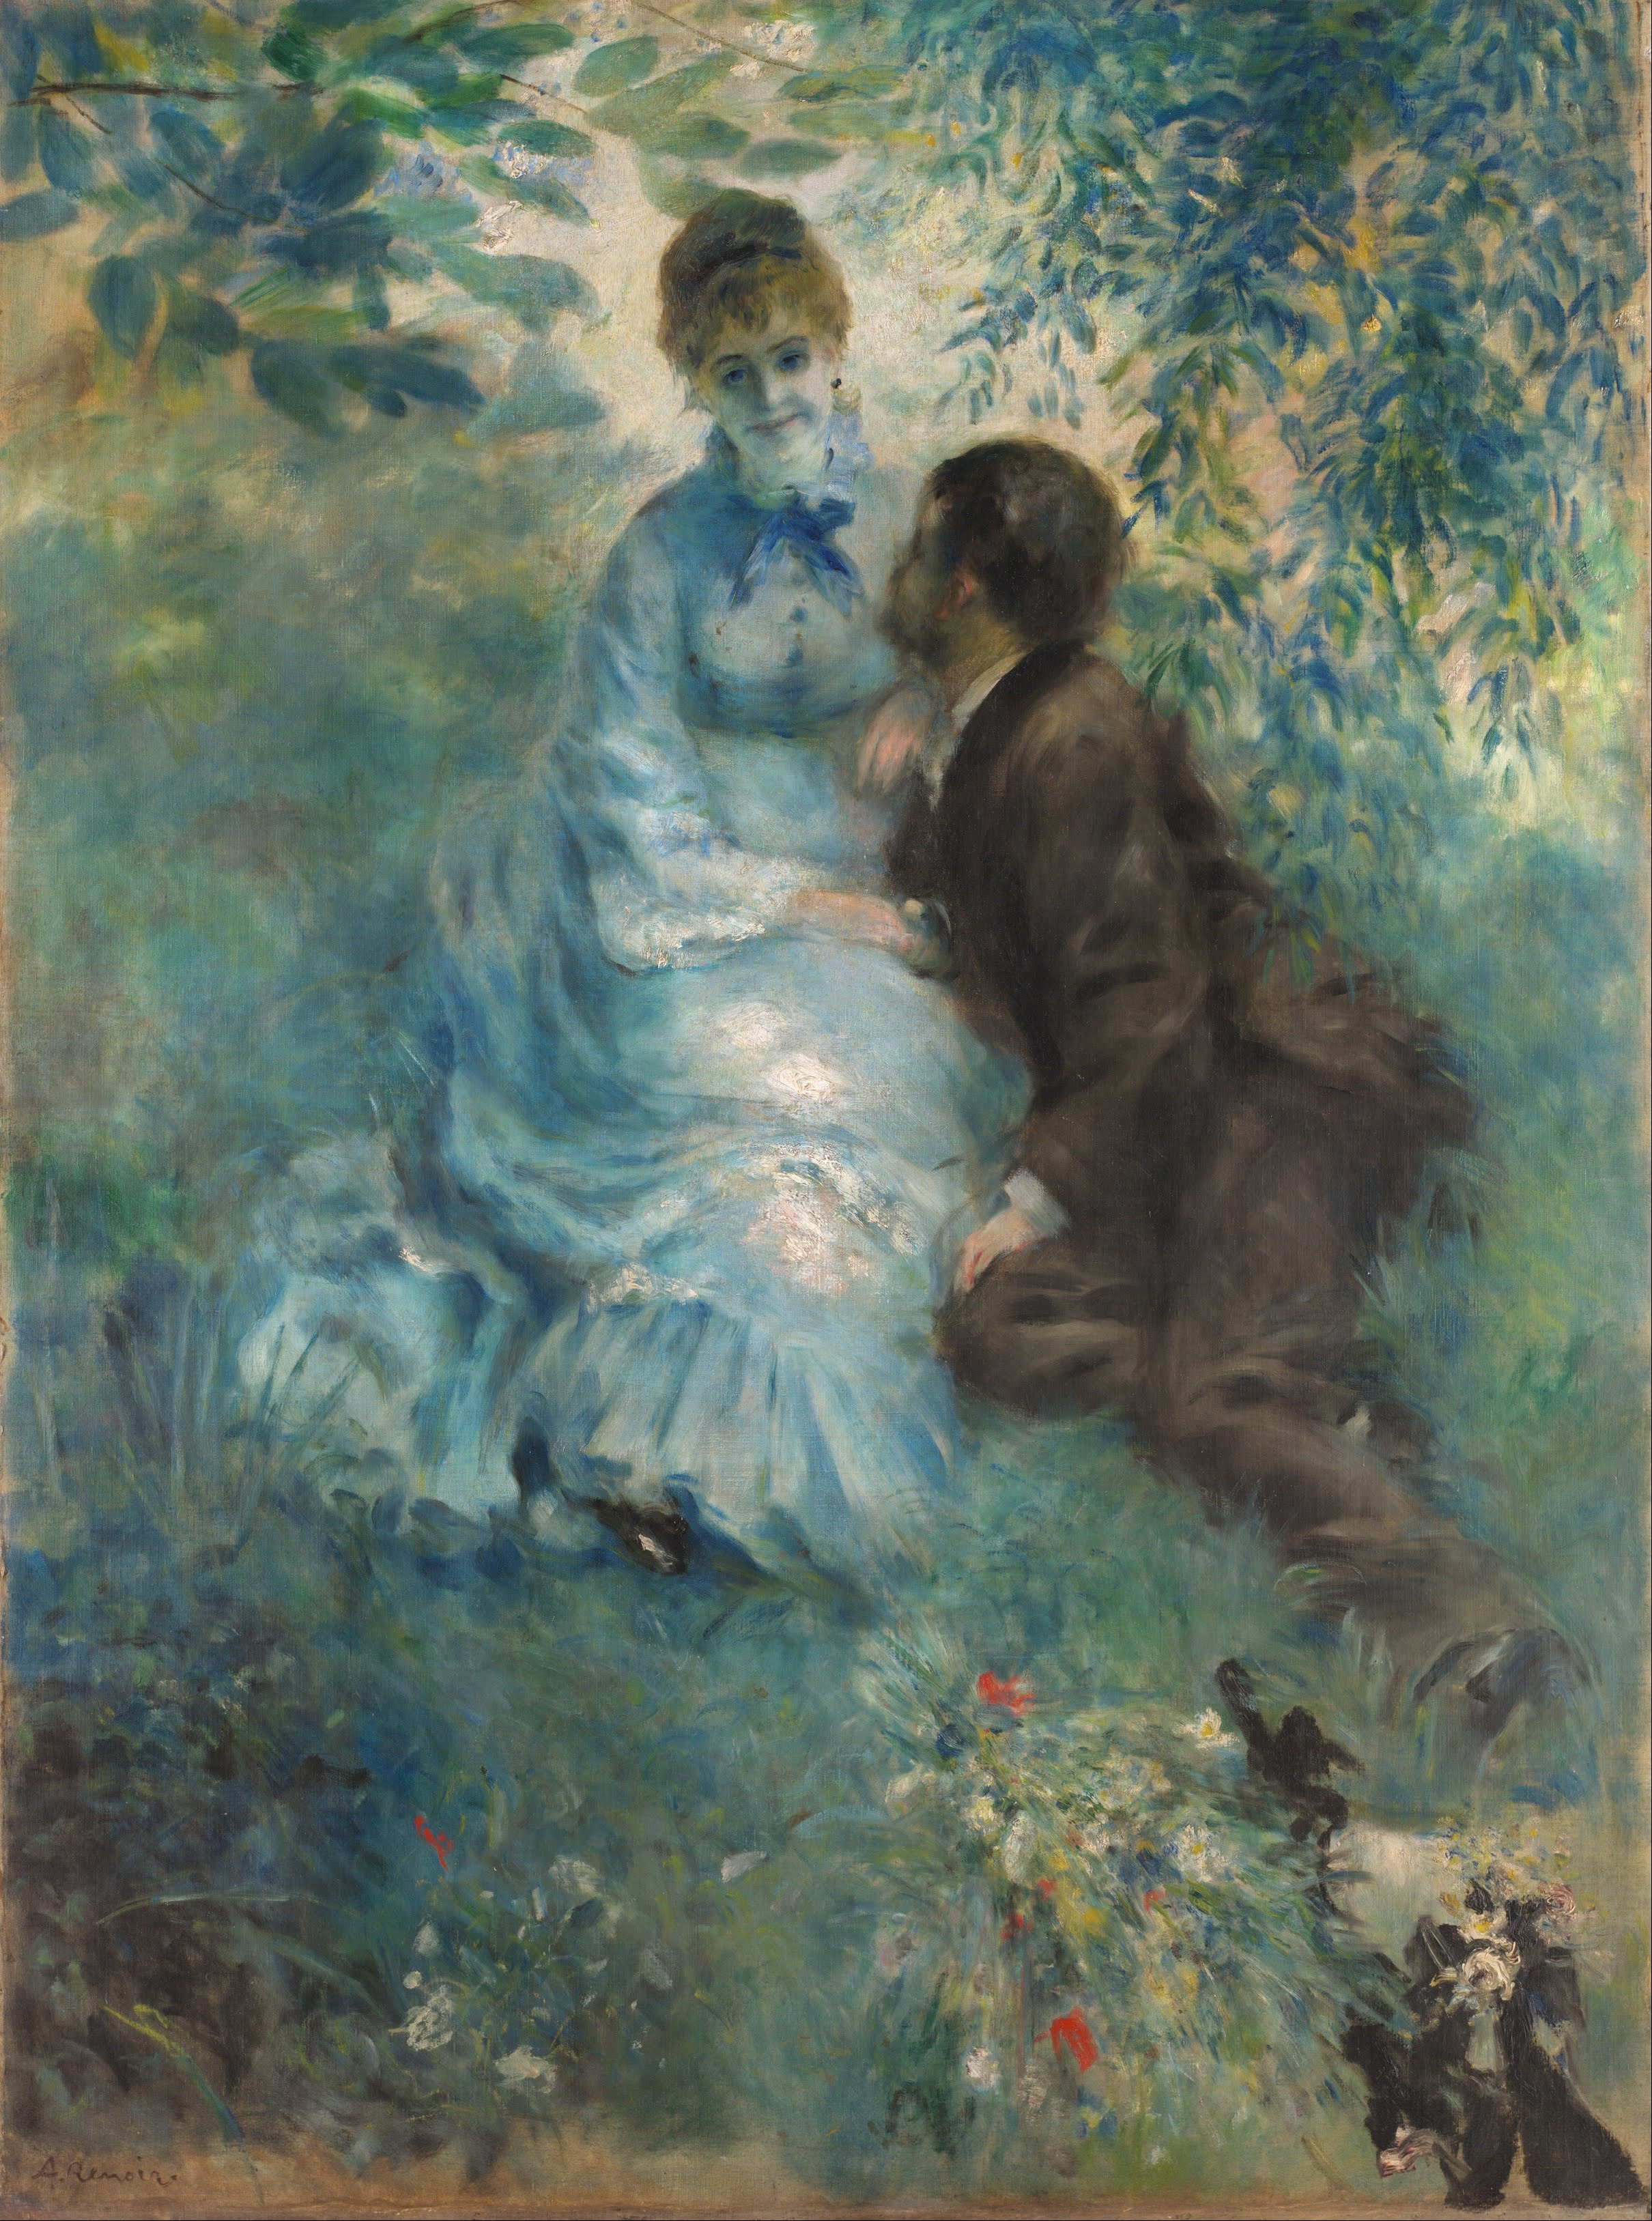 https://upload.wikimedia.org/wikipedia/commons/1/1c/Auguste_Renoir_-_Lovers_-_Google_Art_Project.jpg